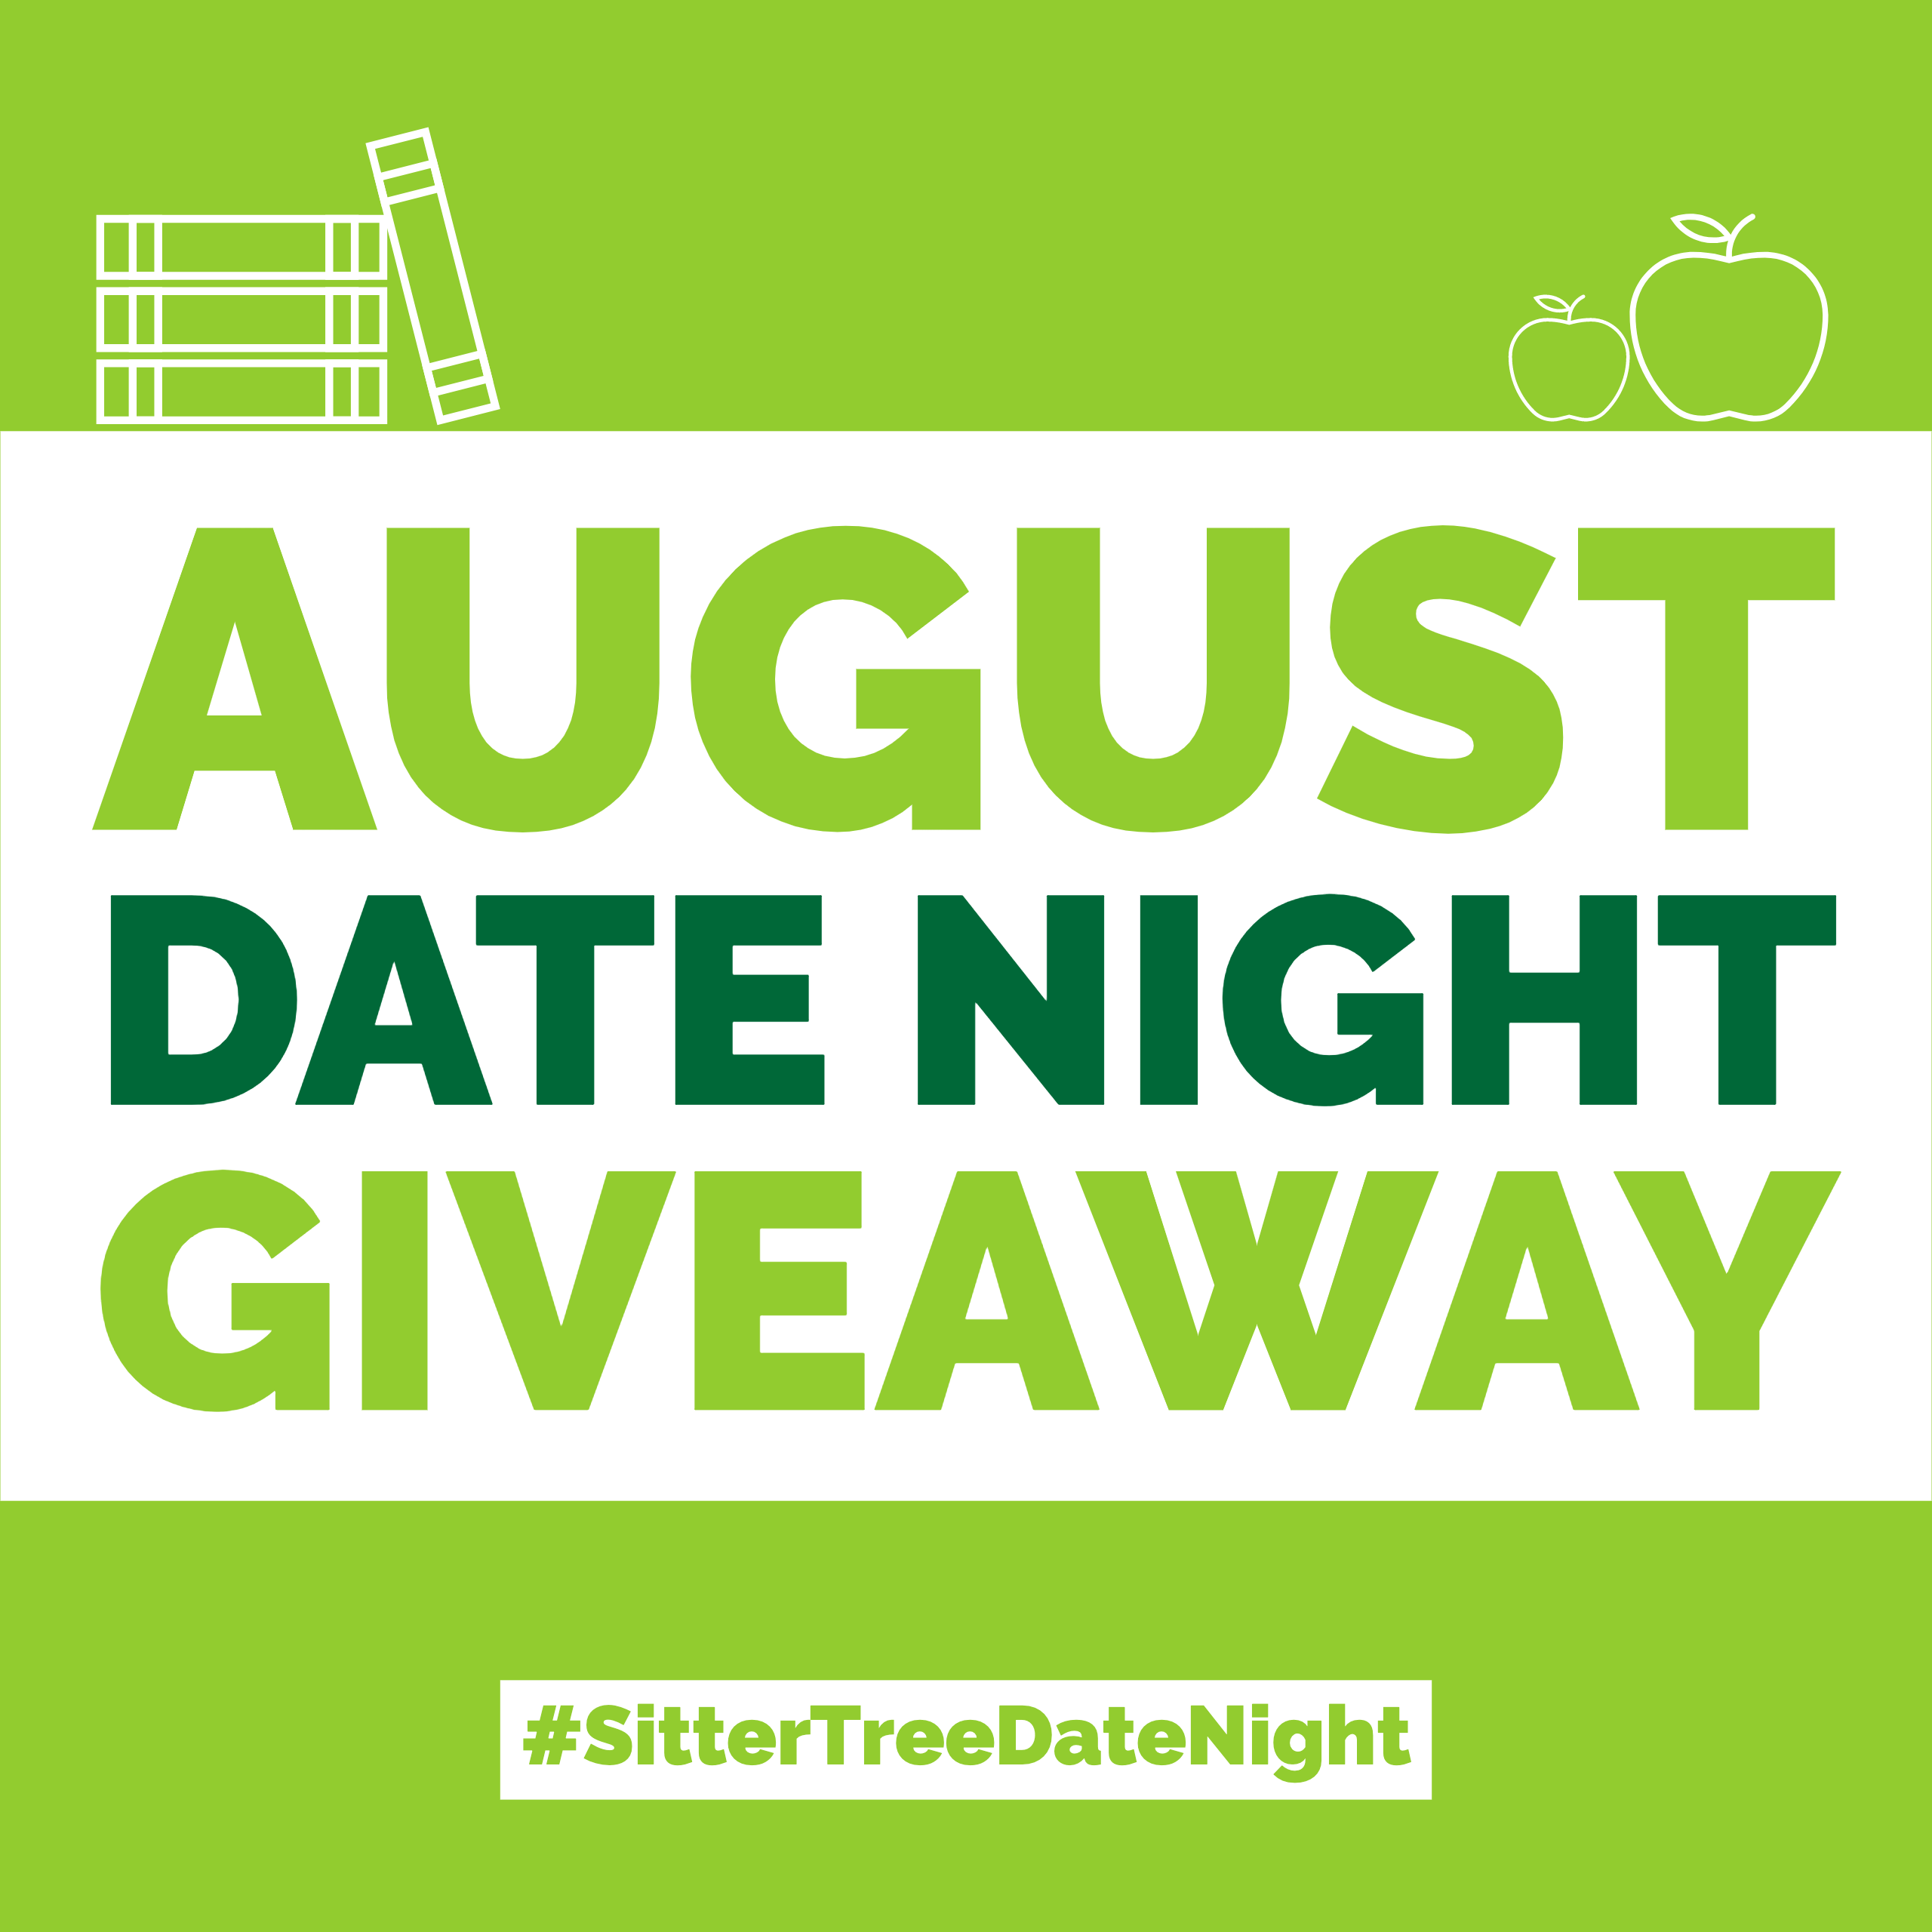 August Date Night Giveaway: FREE Babysitting + $100 Gift card